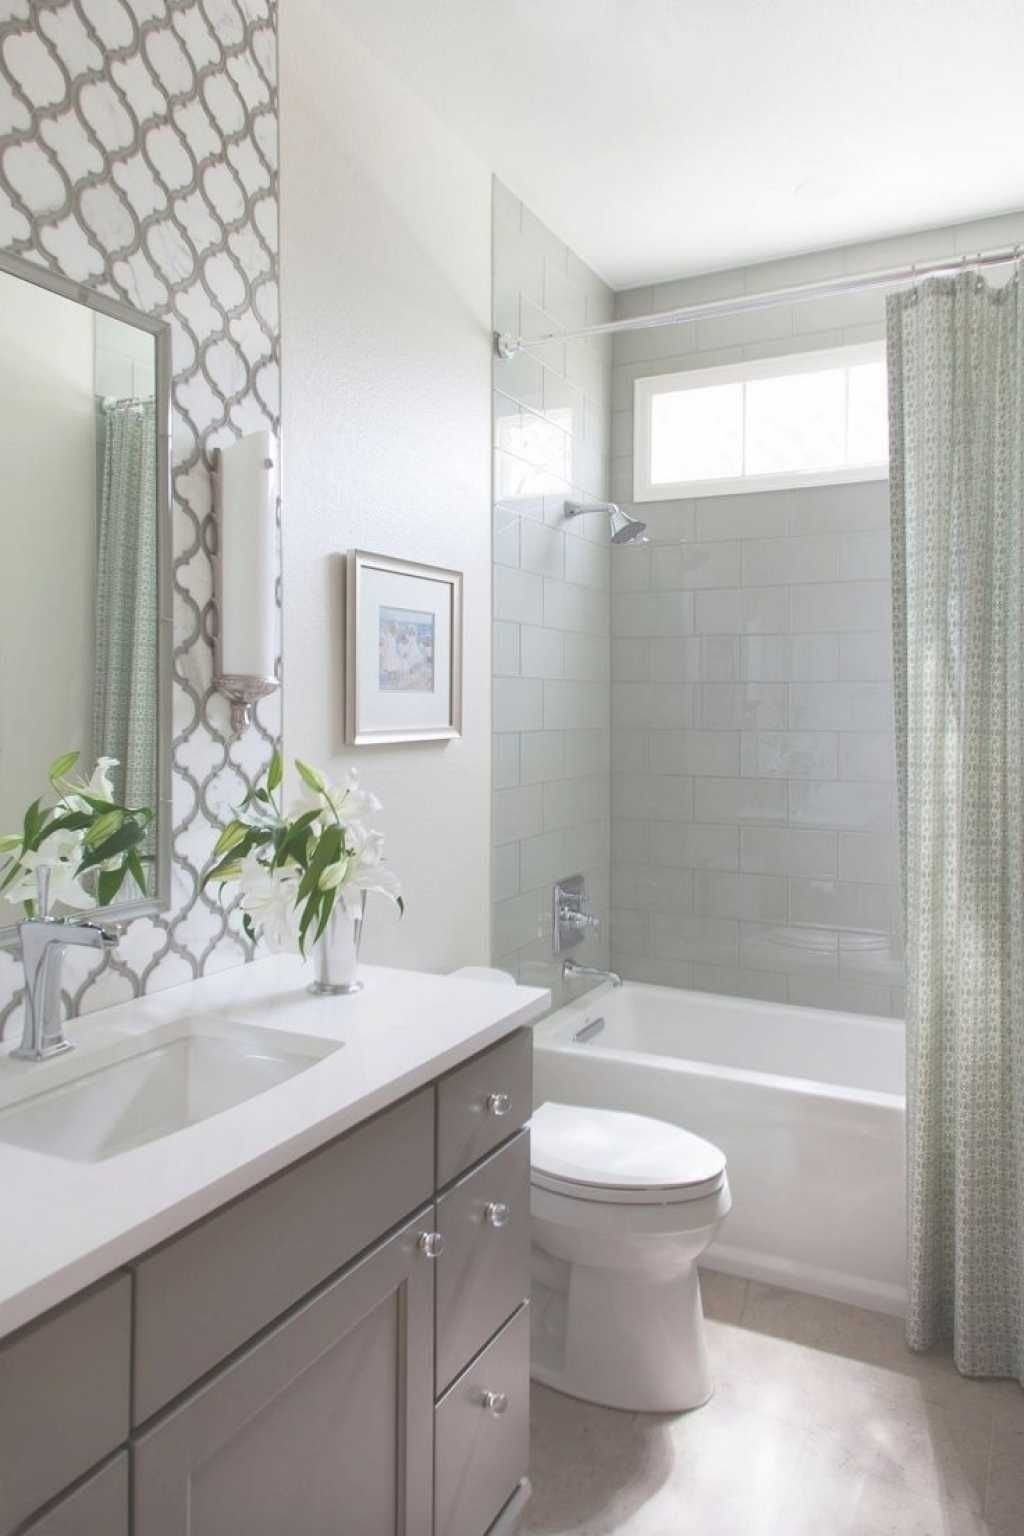 10 Lovely Ideas For A Small Bathroom small bathroom tub shower combo remodeling ideas http zoladecor 4